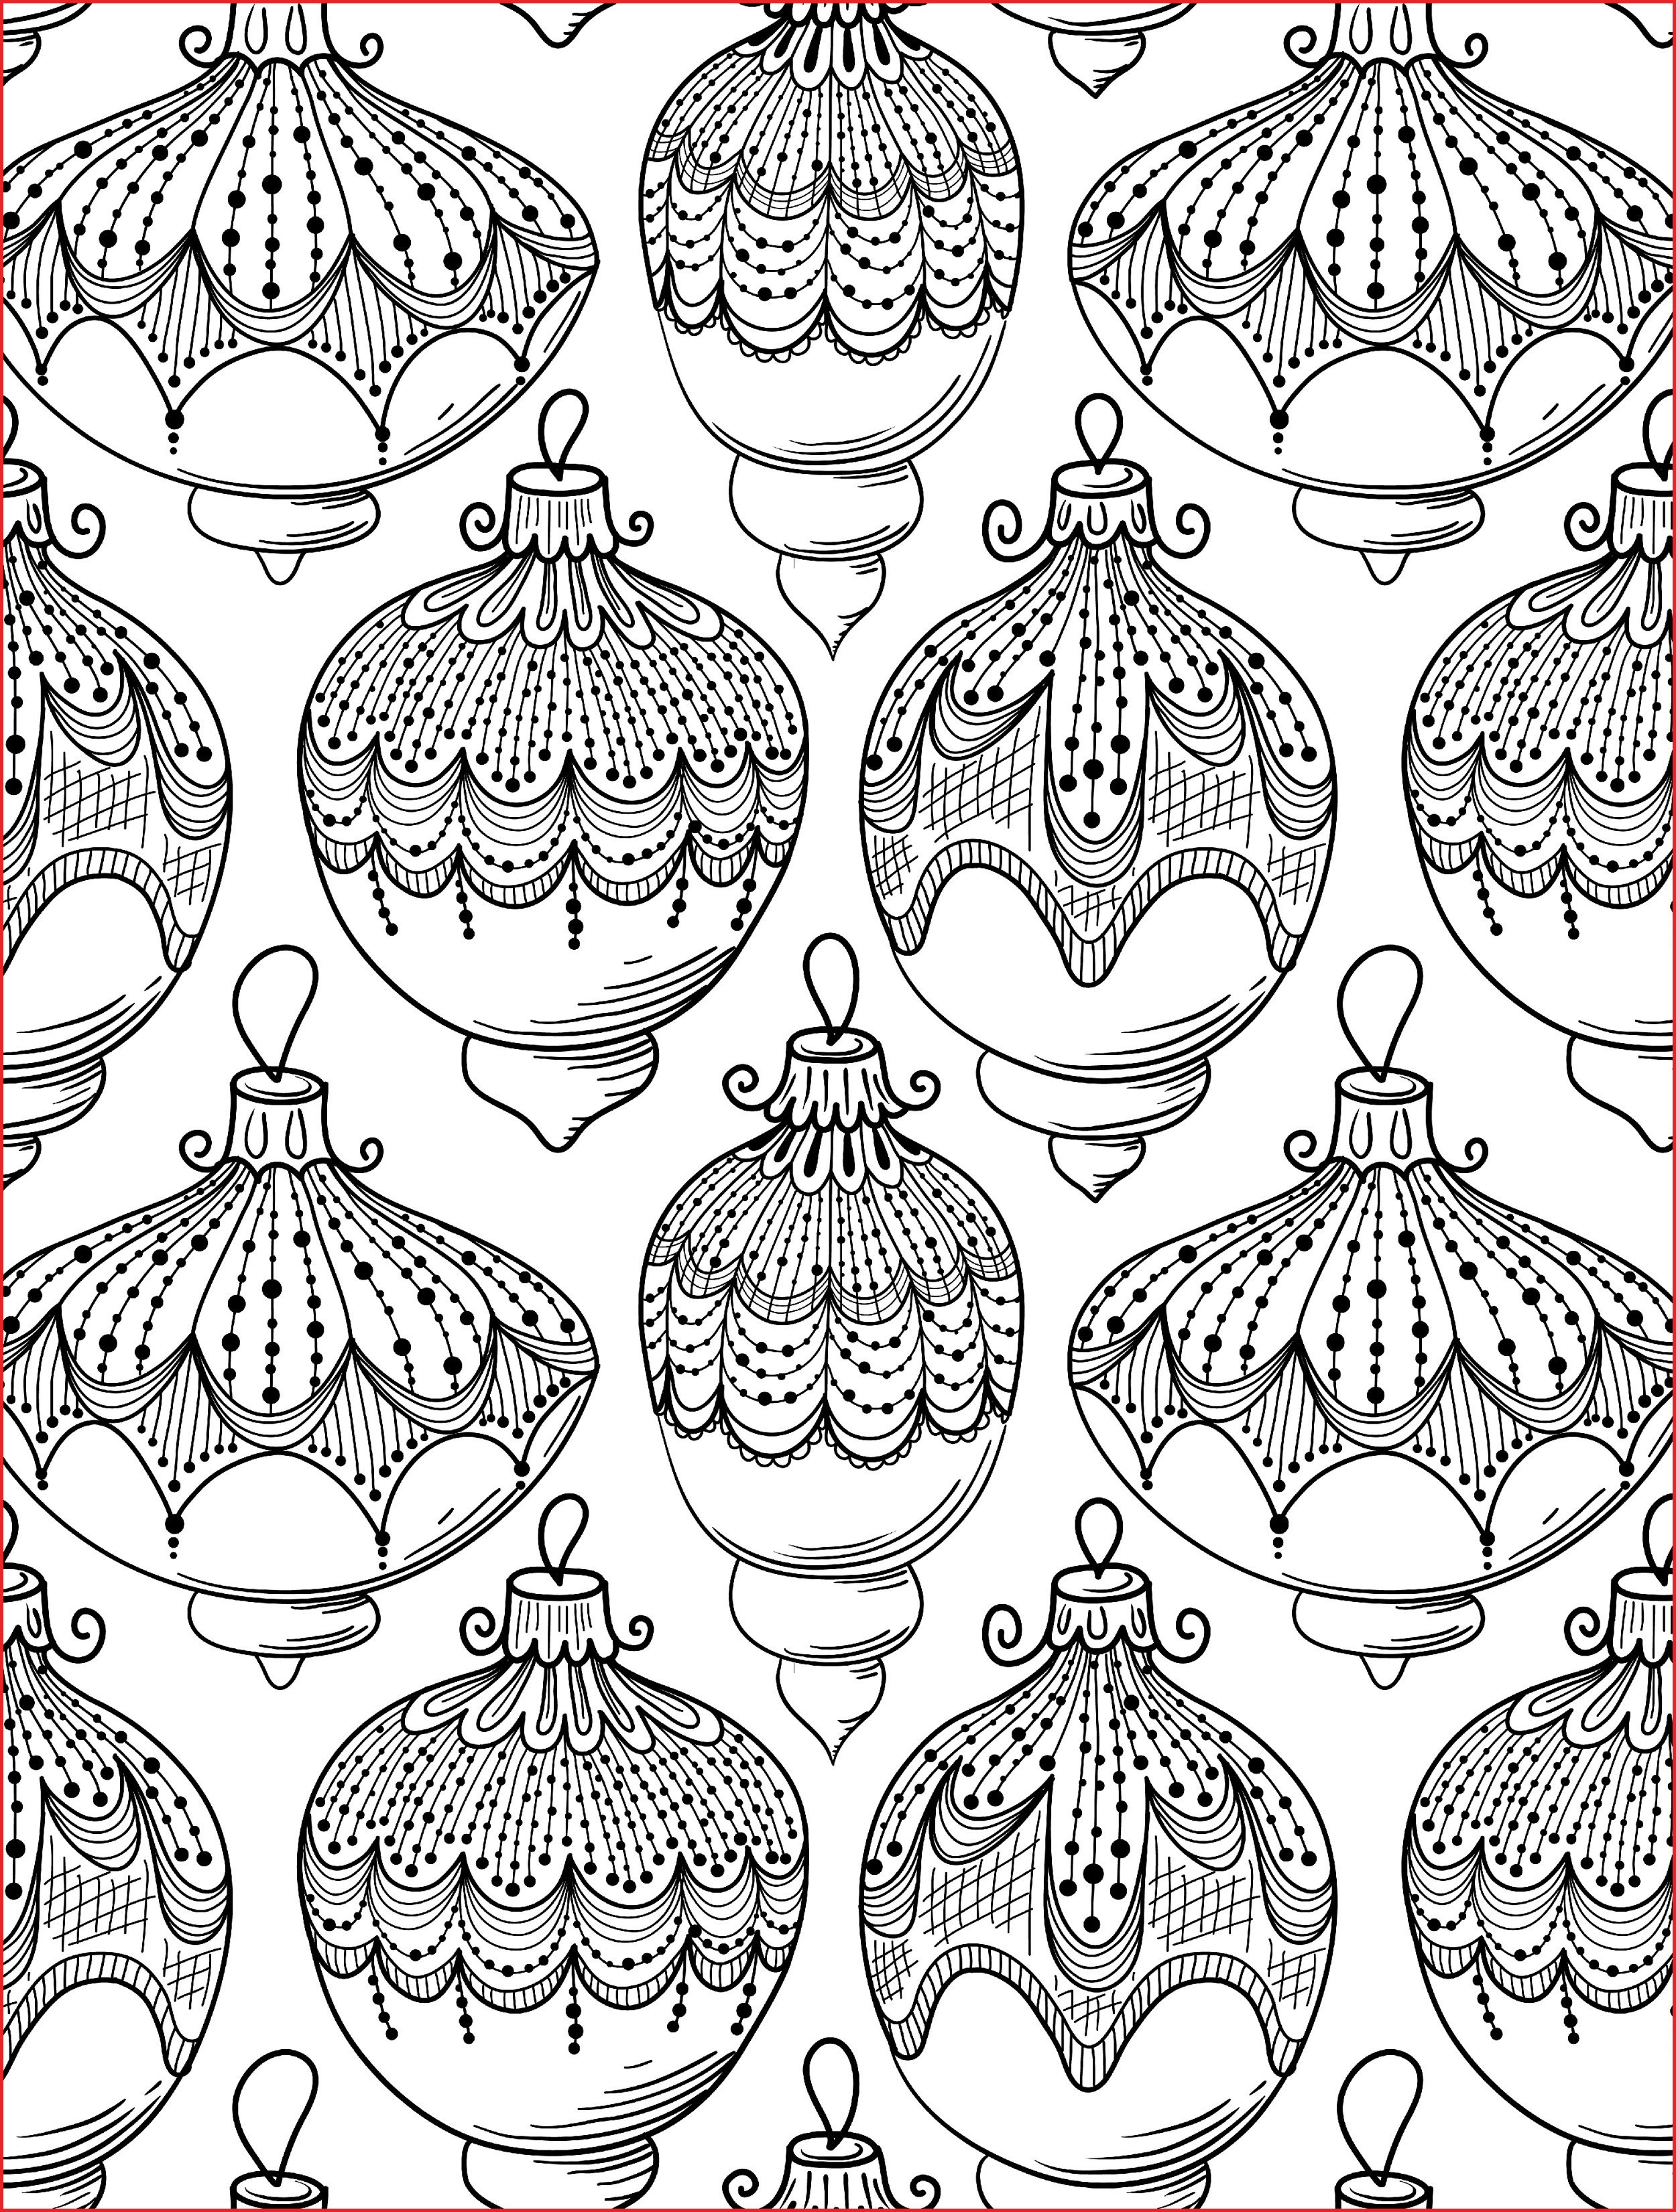 Christmas Colouring In Pages For Adults With Adult Coloring 27583 Lovely Free Printable